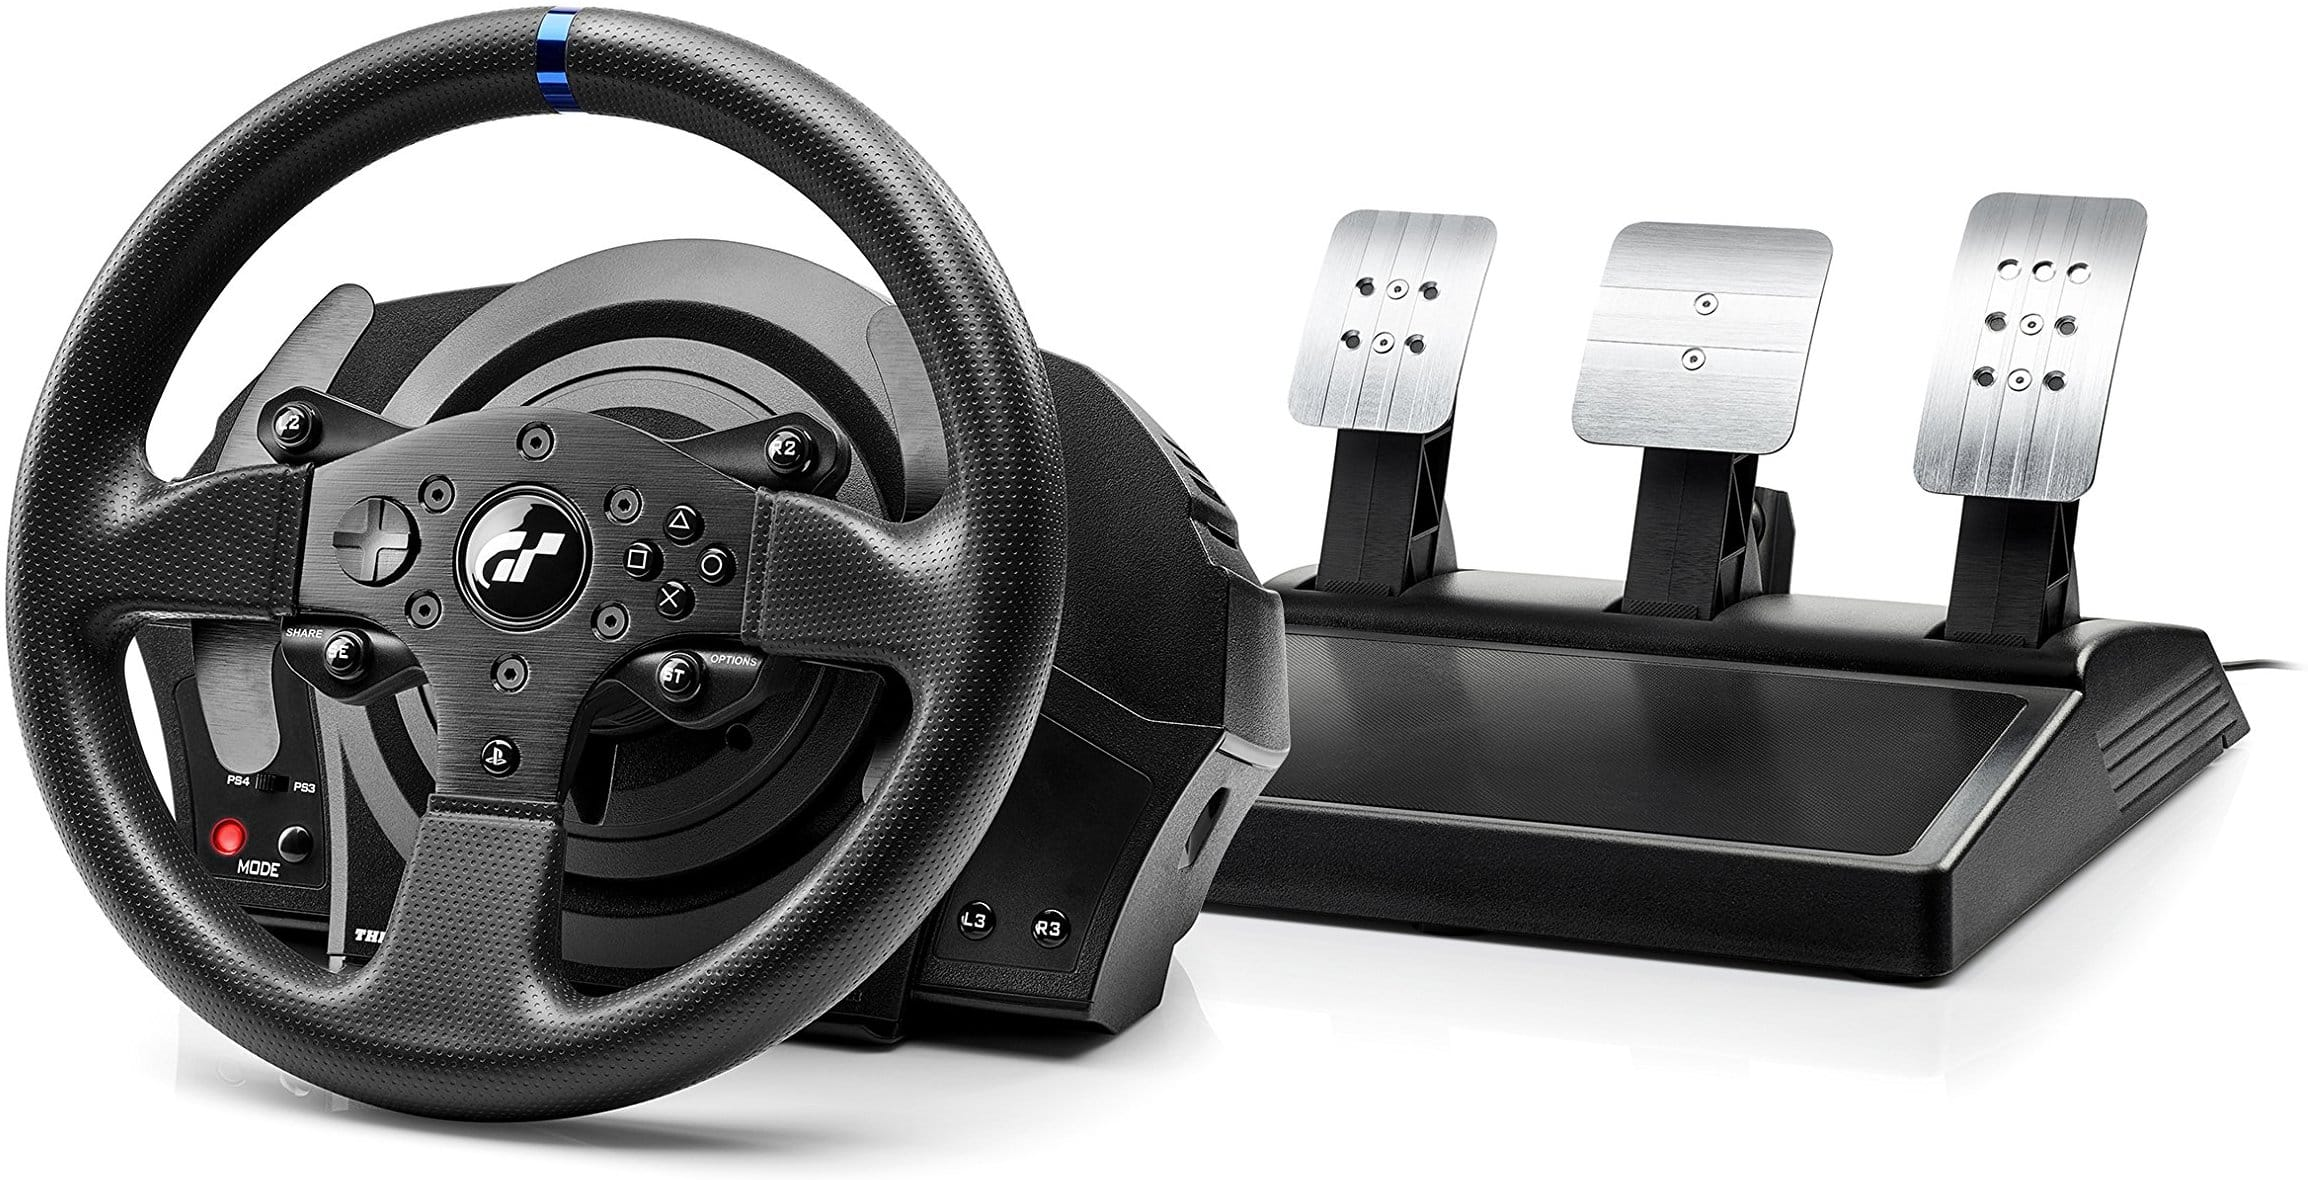 Thrustmaster T300 Rs Gt Racing Wheel For Ps4 Ps3 Pc Page 6 Sport Standard Edition R3 Deal Image